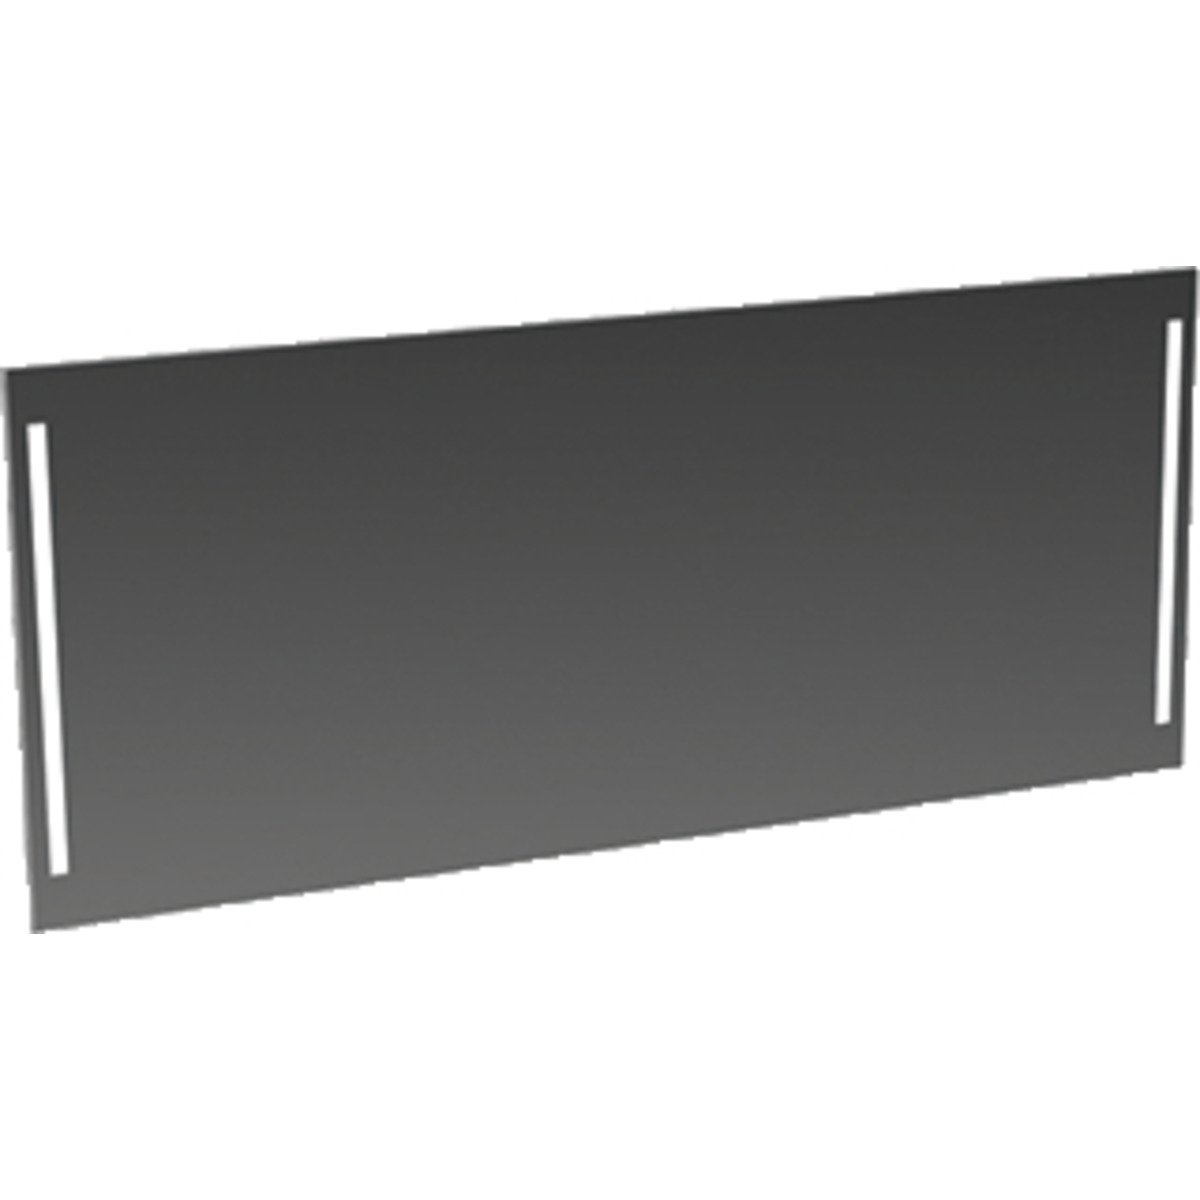 bruynzeel panneau miroir 150x70cm avec lumi re led. Black Bedroom Furniture Sets. Home Design Ideas